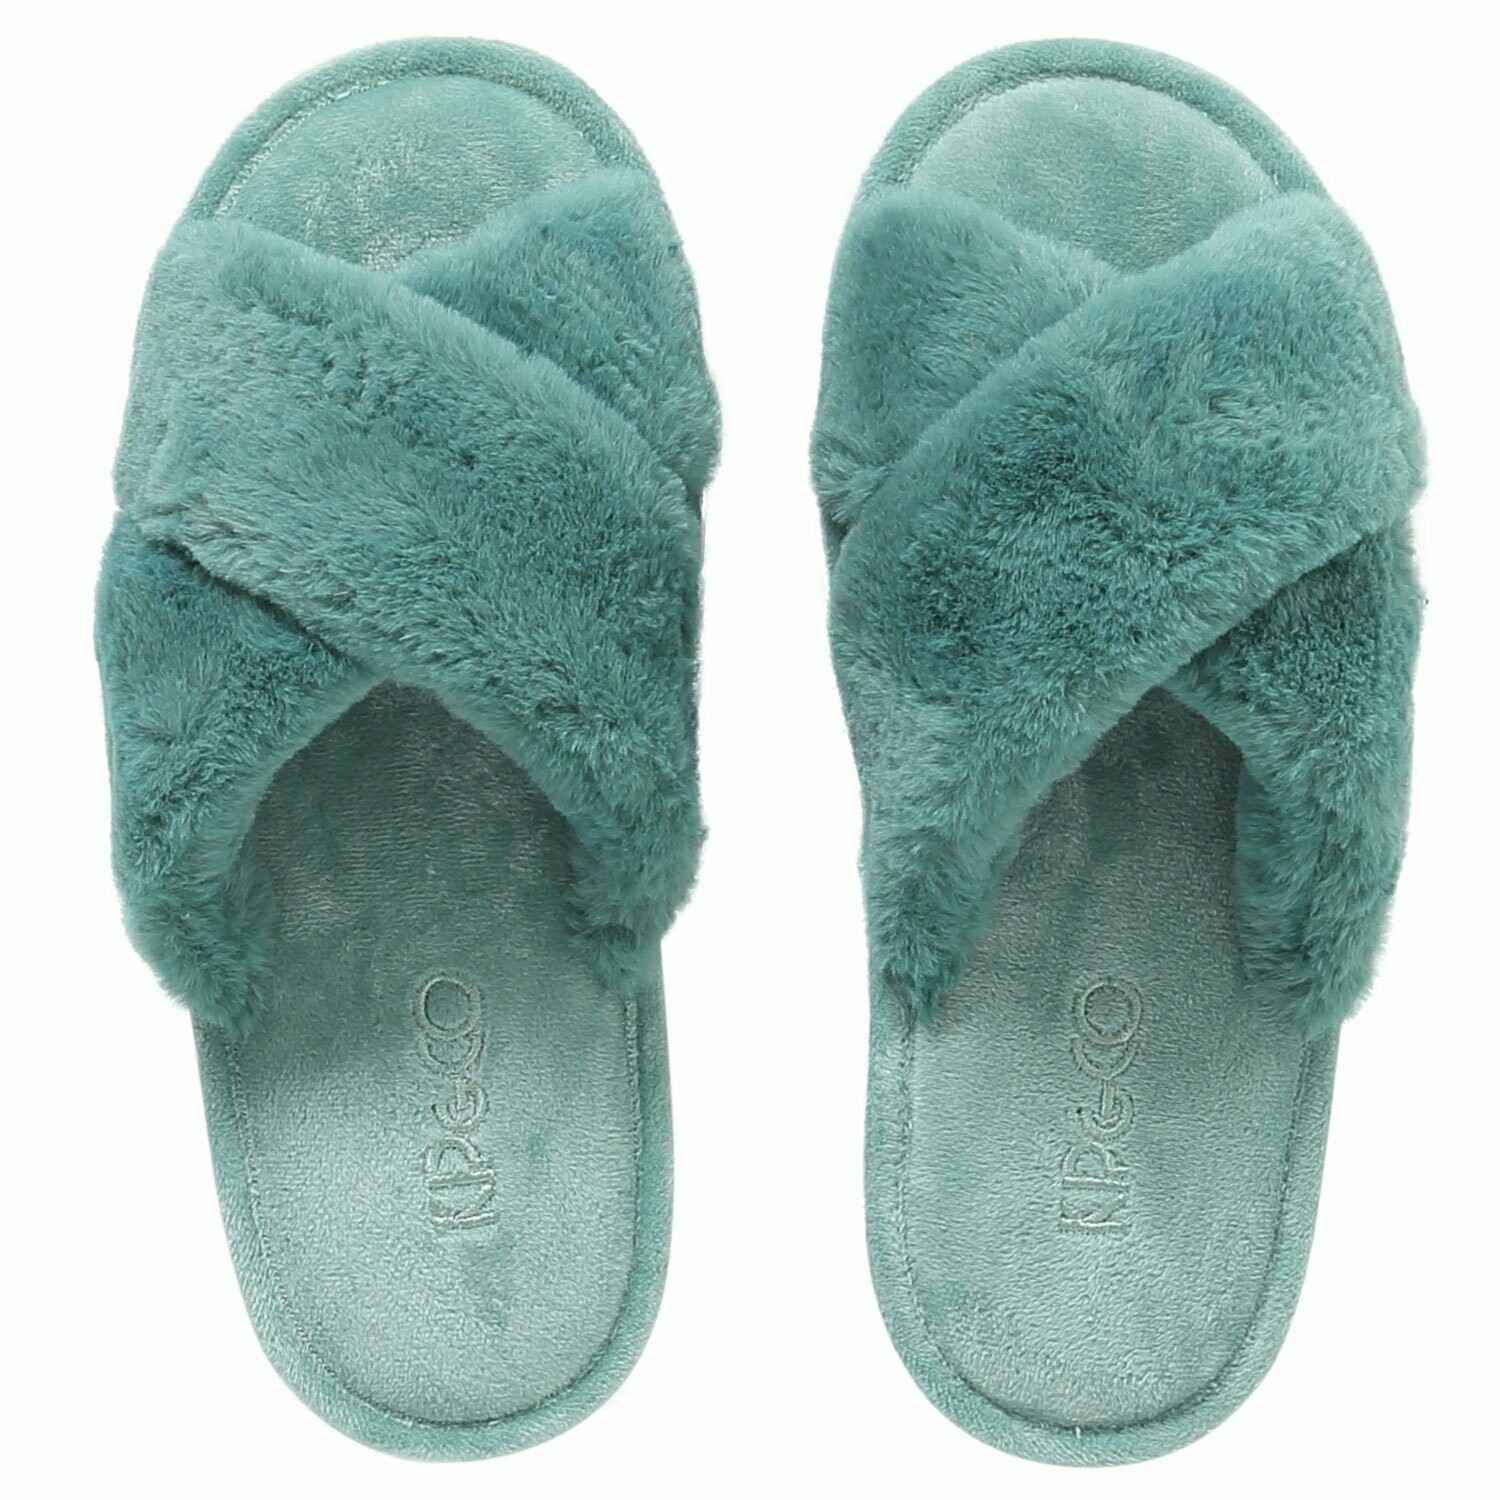 Adult Slippers - Jade Green - Size 35/36